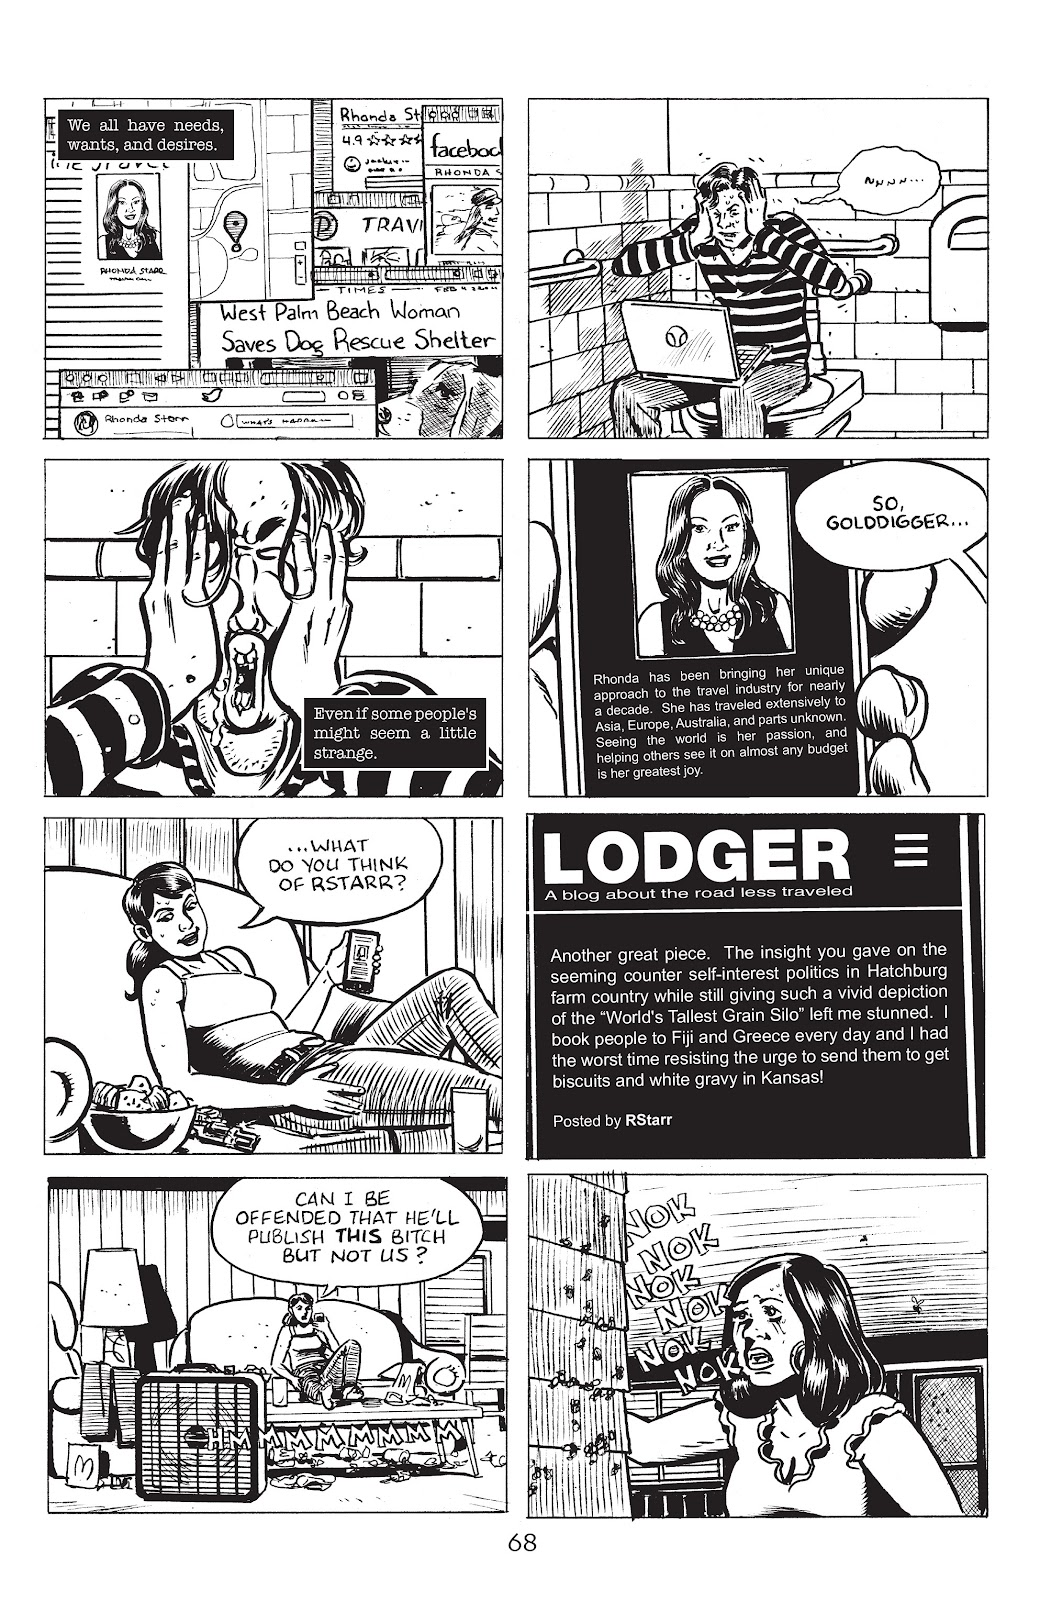 Read online Lodger comic -  Issue #4 - 10